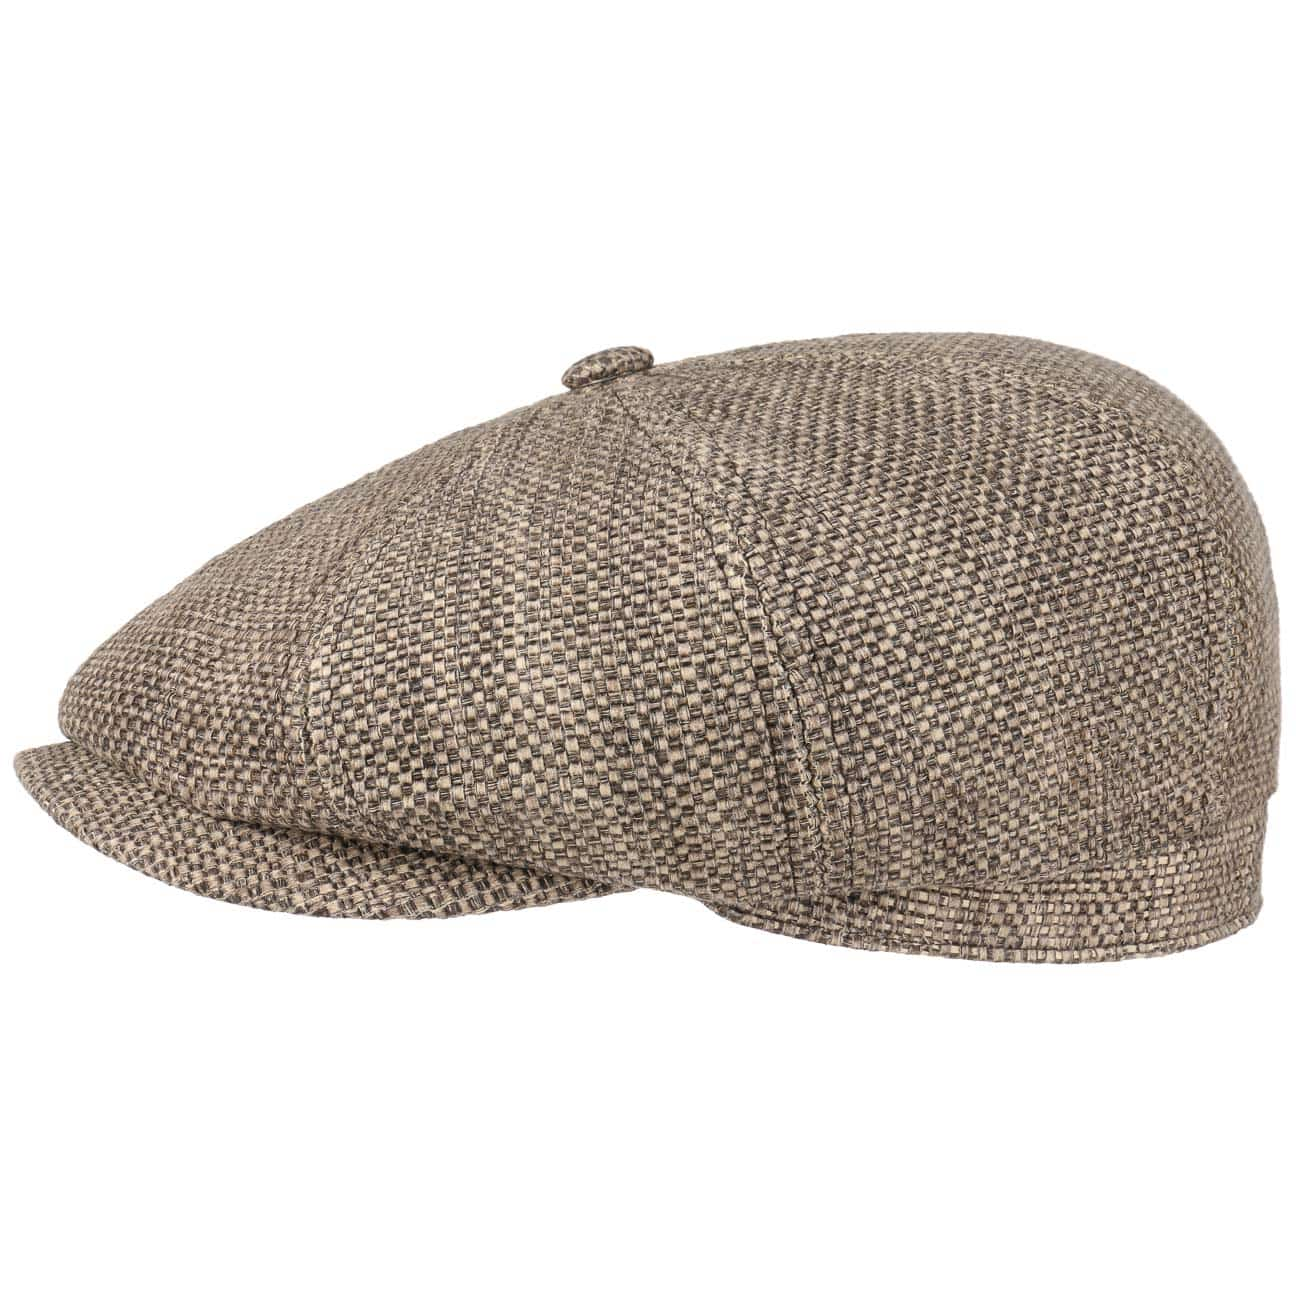 Hatteras Toyo Classic Flat Cap by Stetson  straw cap